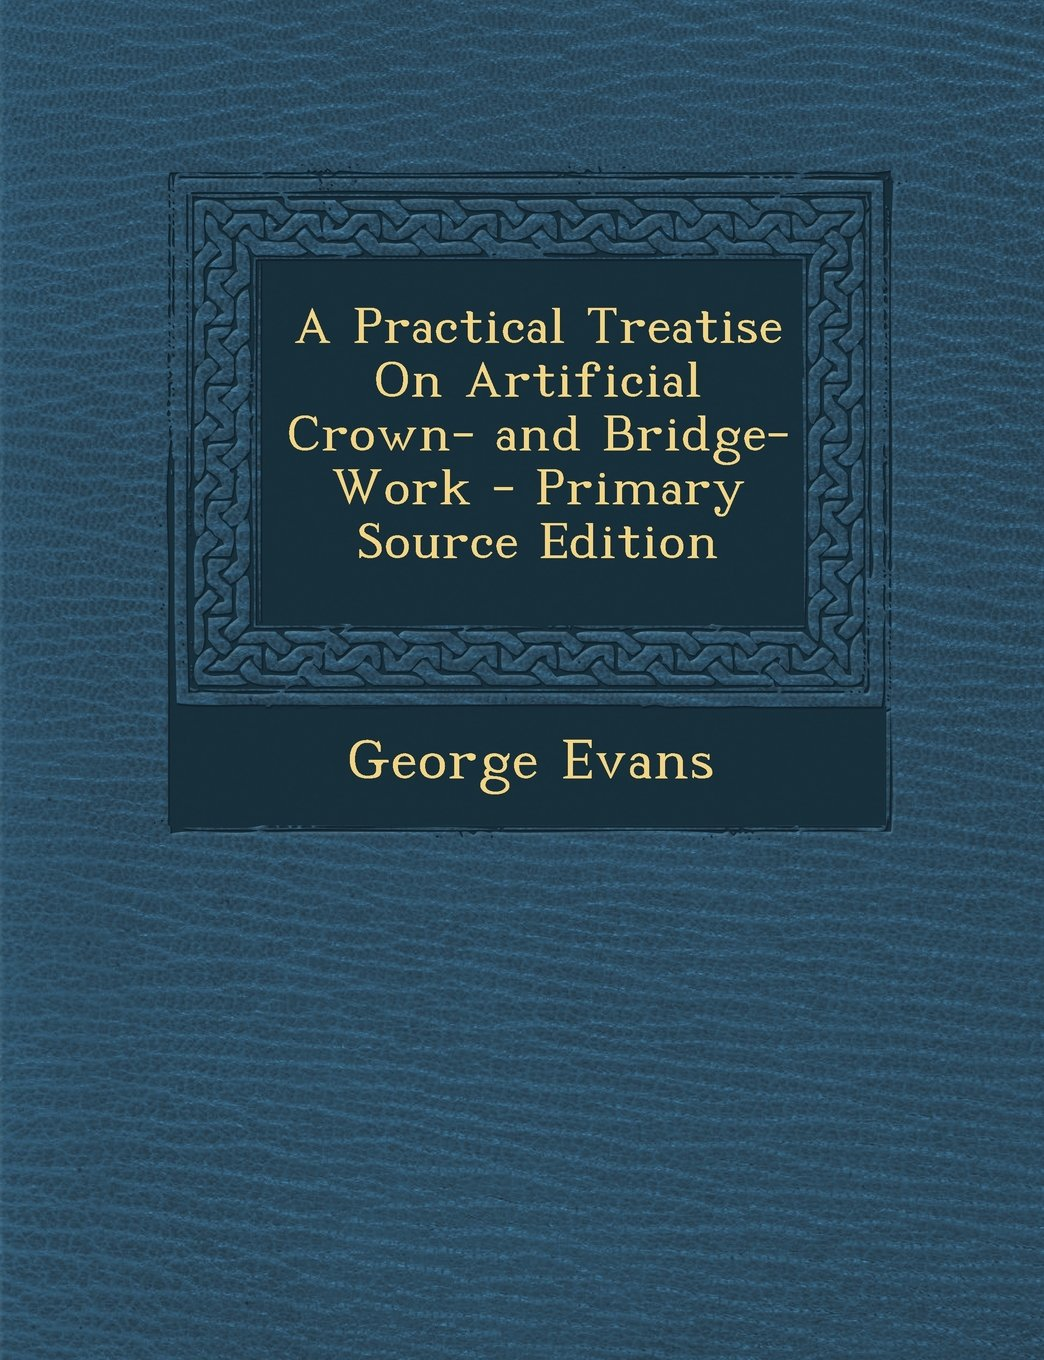 Read Online A Practical Treatise On Artificial Crown- and Bridge-Work pdf epub